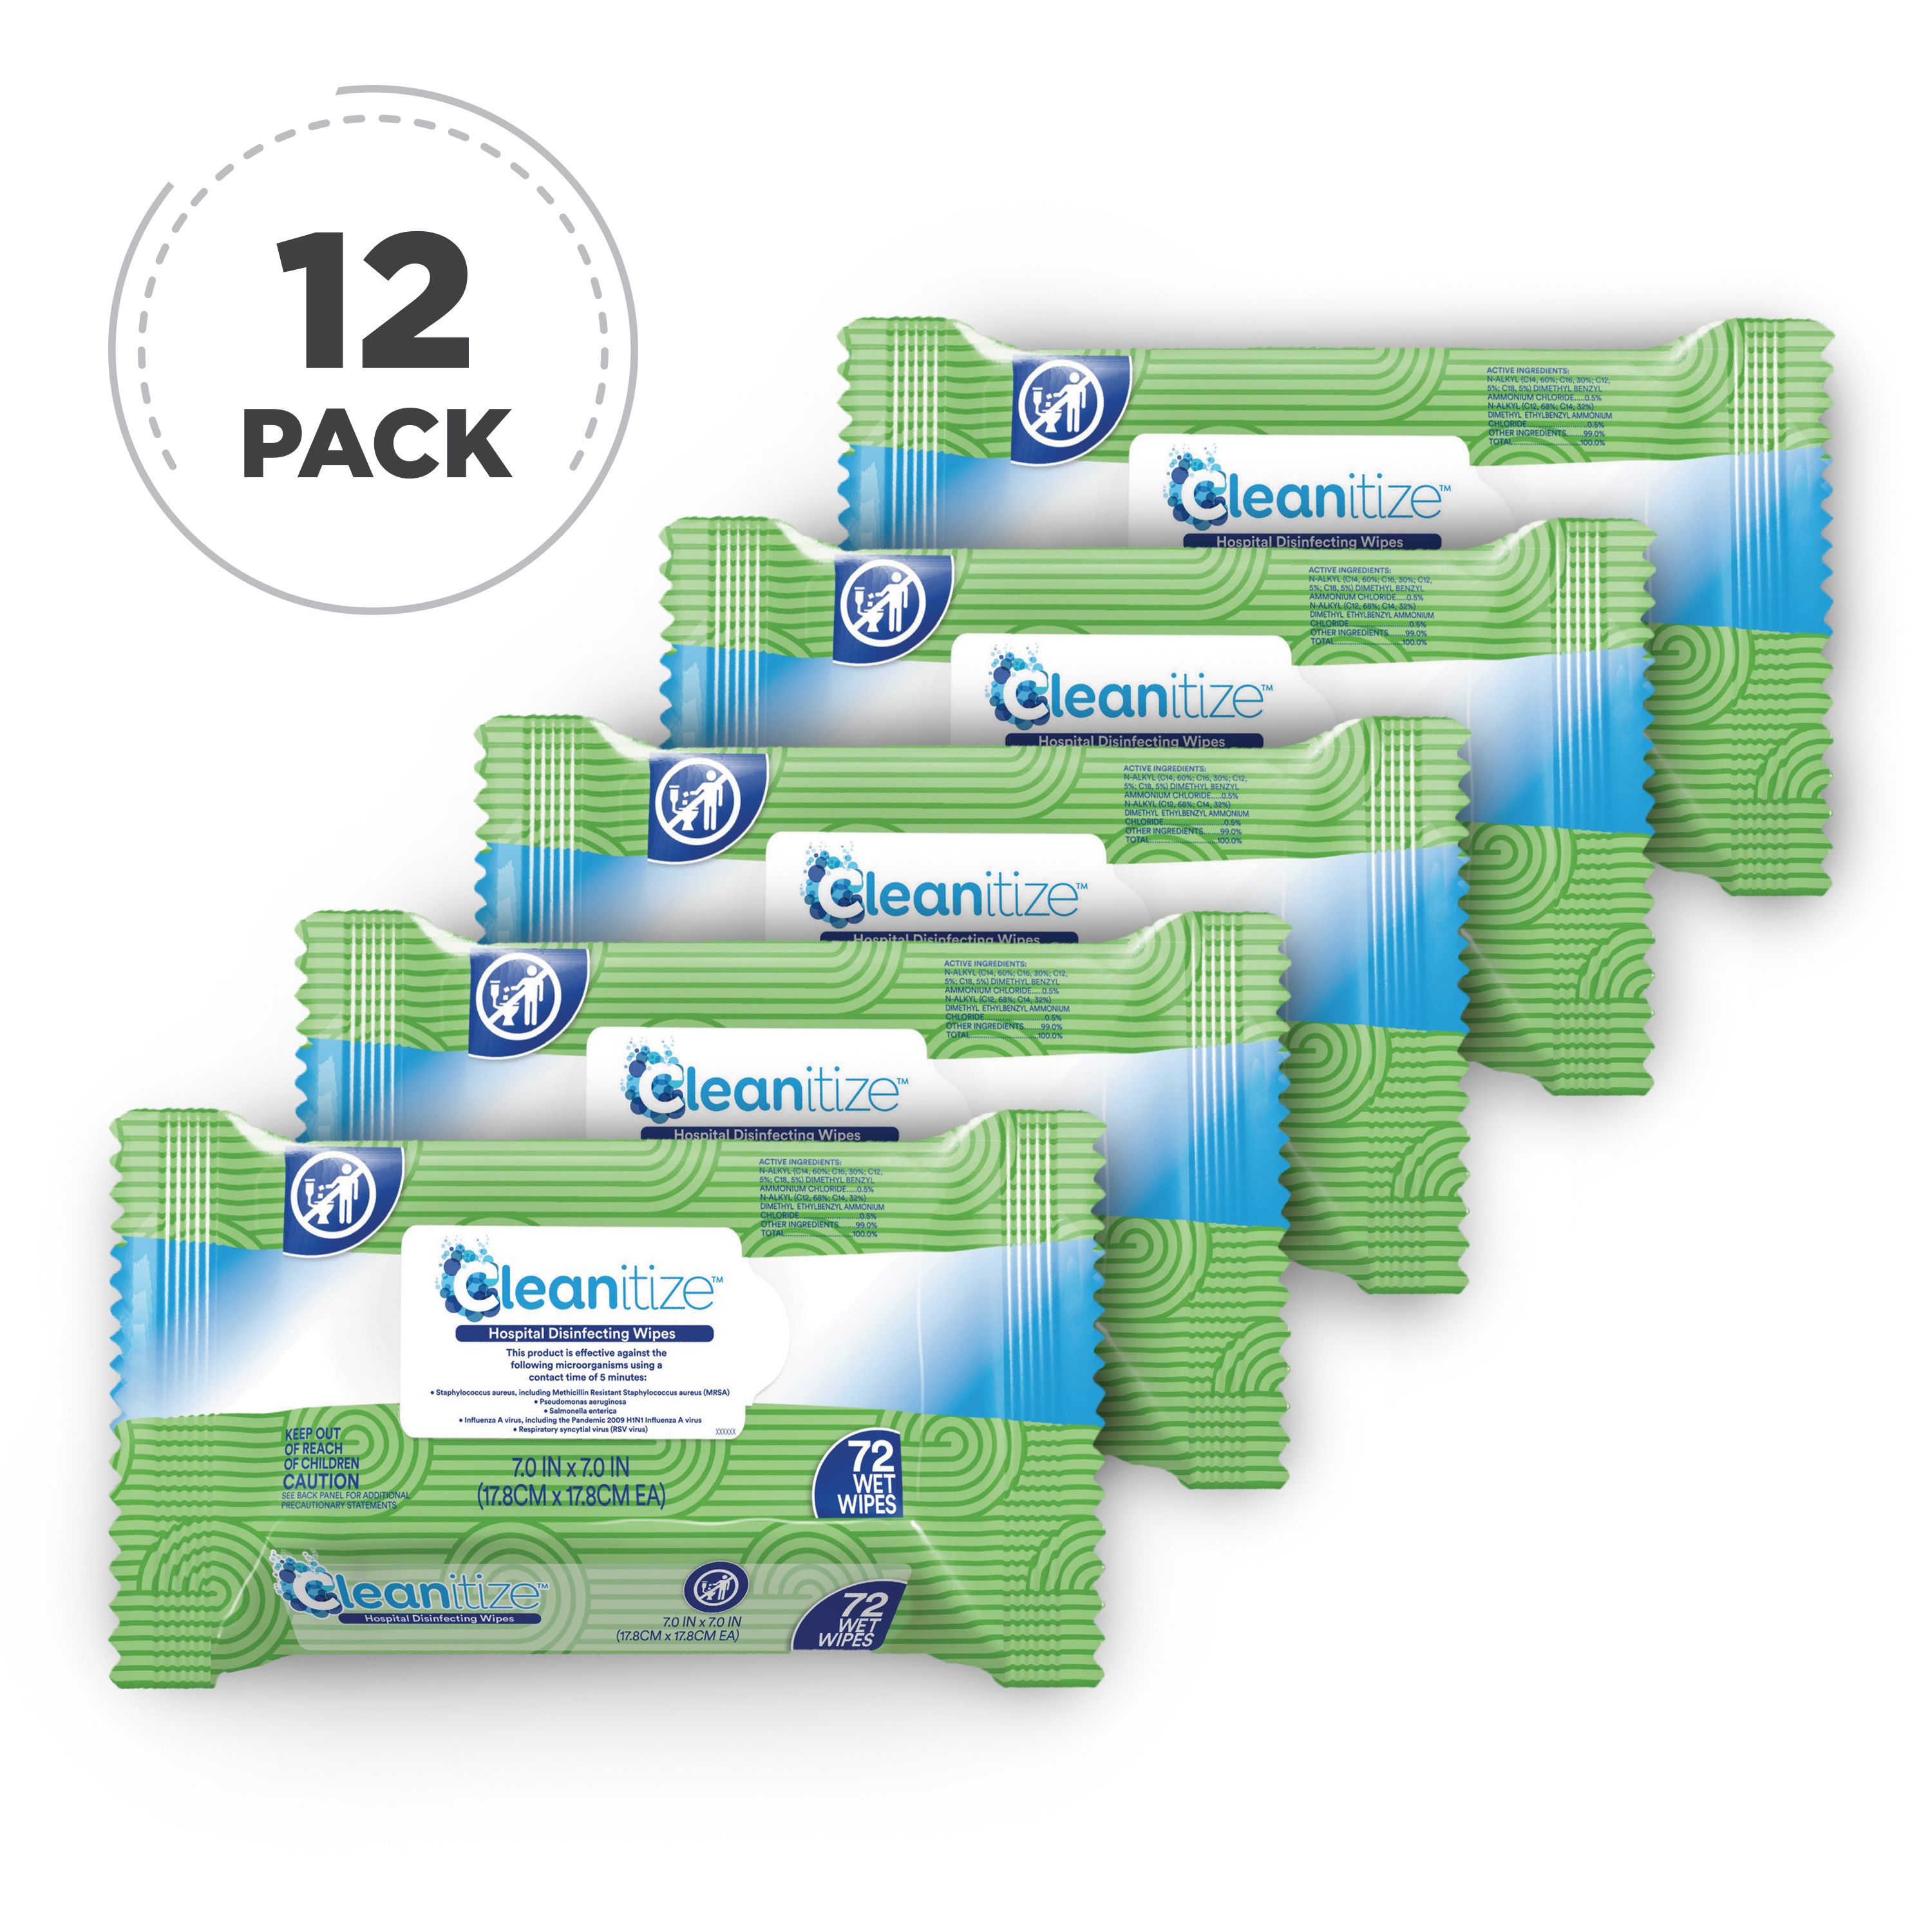 Cleanitize Disinfectant Wipes | EPA registered, on N List, Proven to Kill COVID-19, Case of 12/72 W